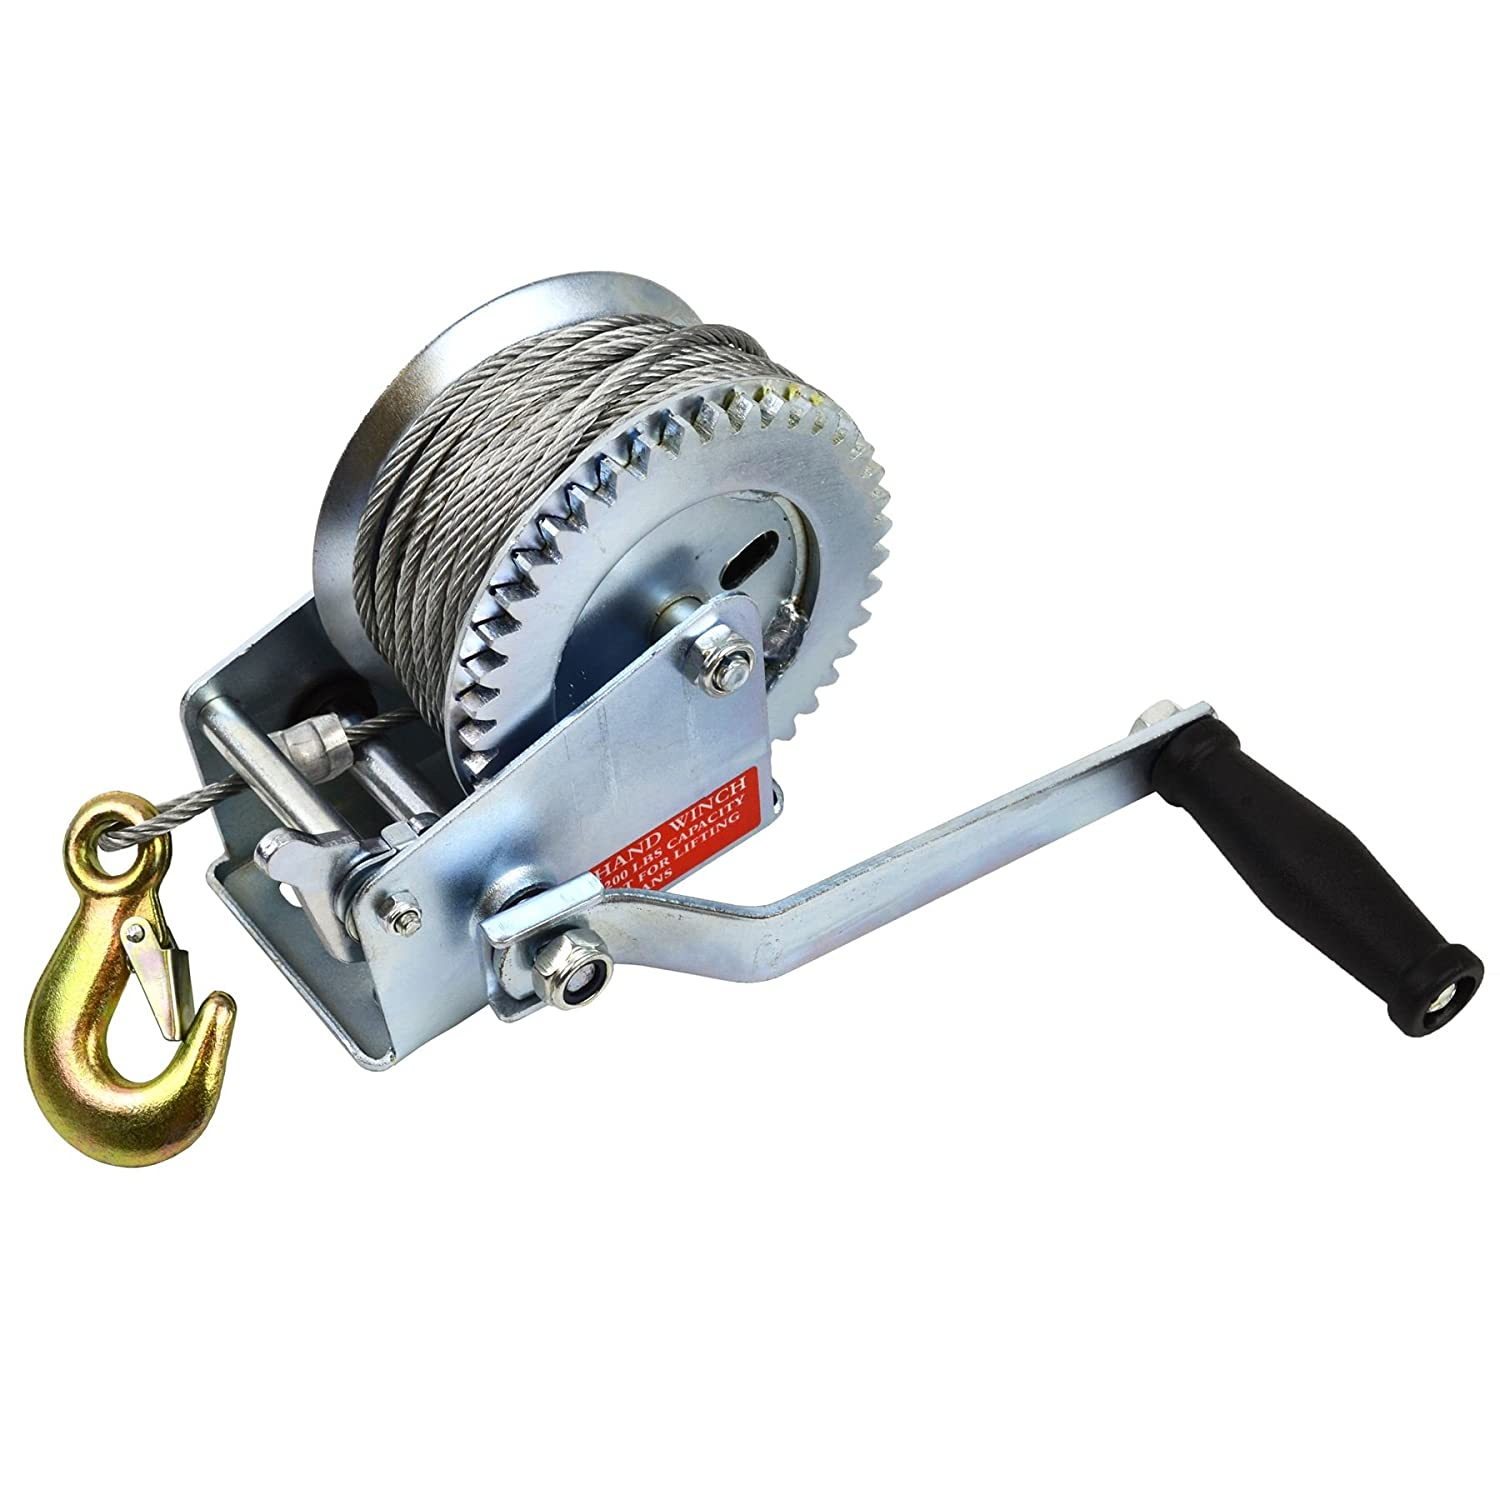 1200LB CAR BOAT HEAVY DUTY HAND WINCH /& 10M CABLE /& HOOK